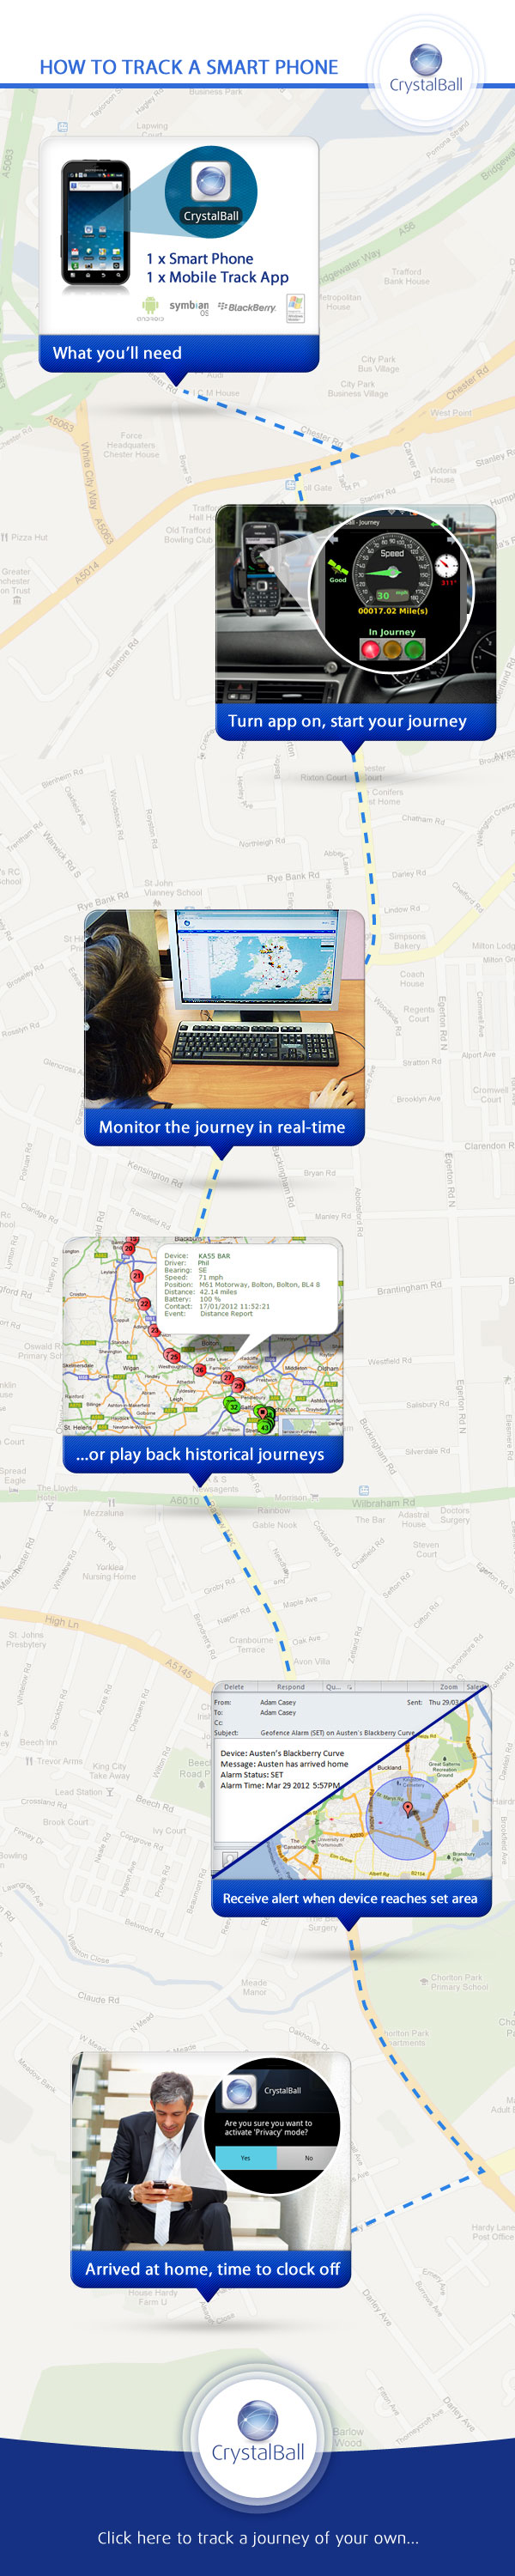 how to track a mobile phone